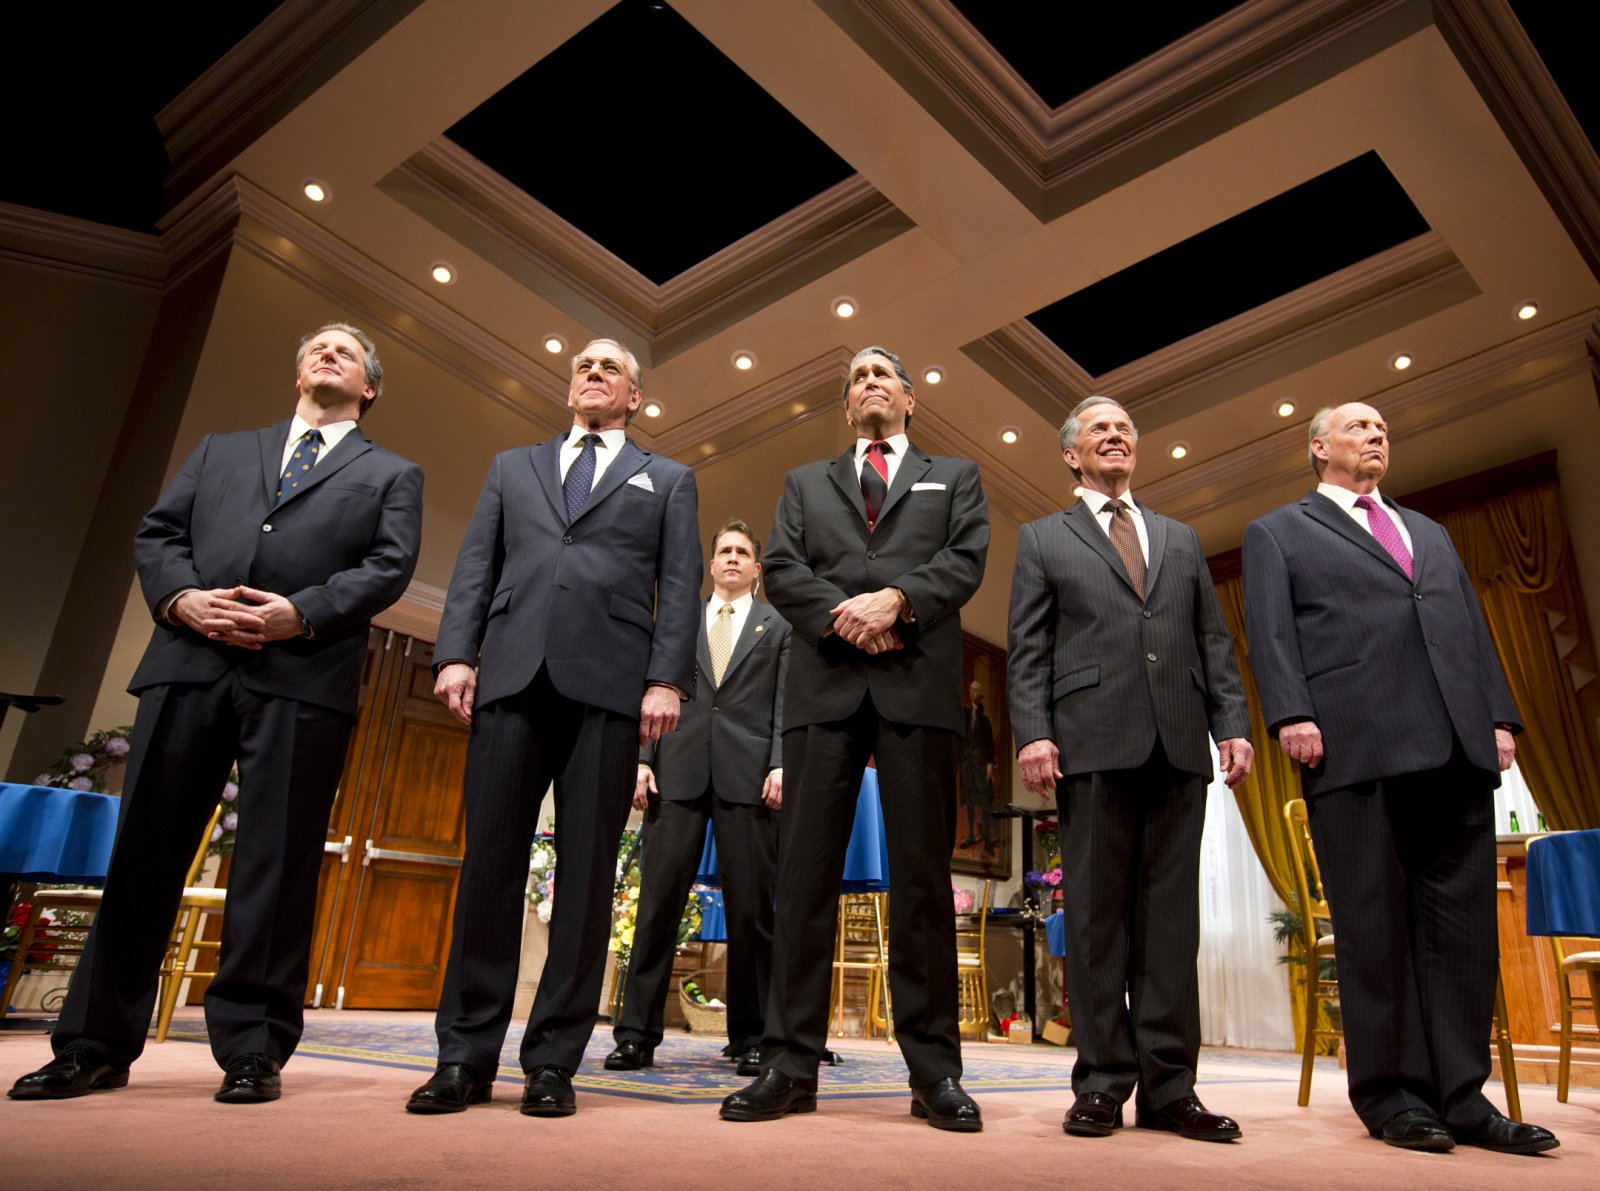 (L – R) – Brit Whittle, Mark Jacoby, (back row) Reese Madigan, Steve Sheridan, Martin L'Herault, and Jeff Steitzer in Milwaukee Repertory Theater's 2014/15 Quadracci Powerhouse world premiere production of Five Presidents.